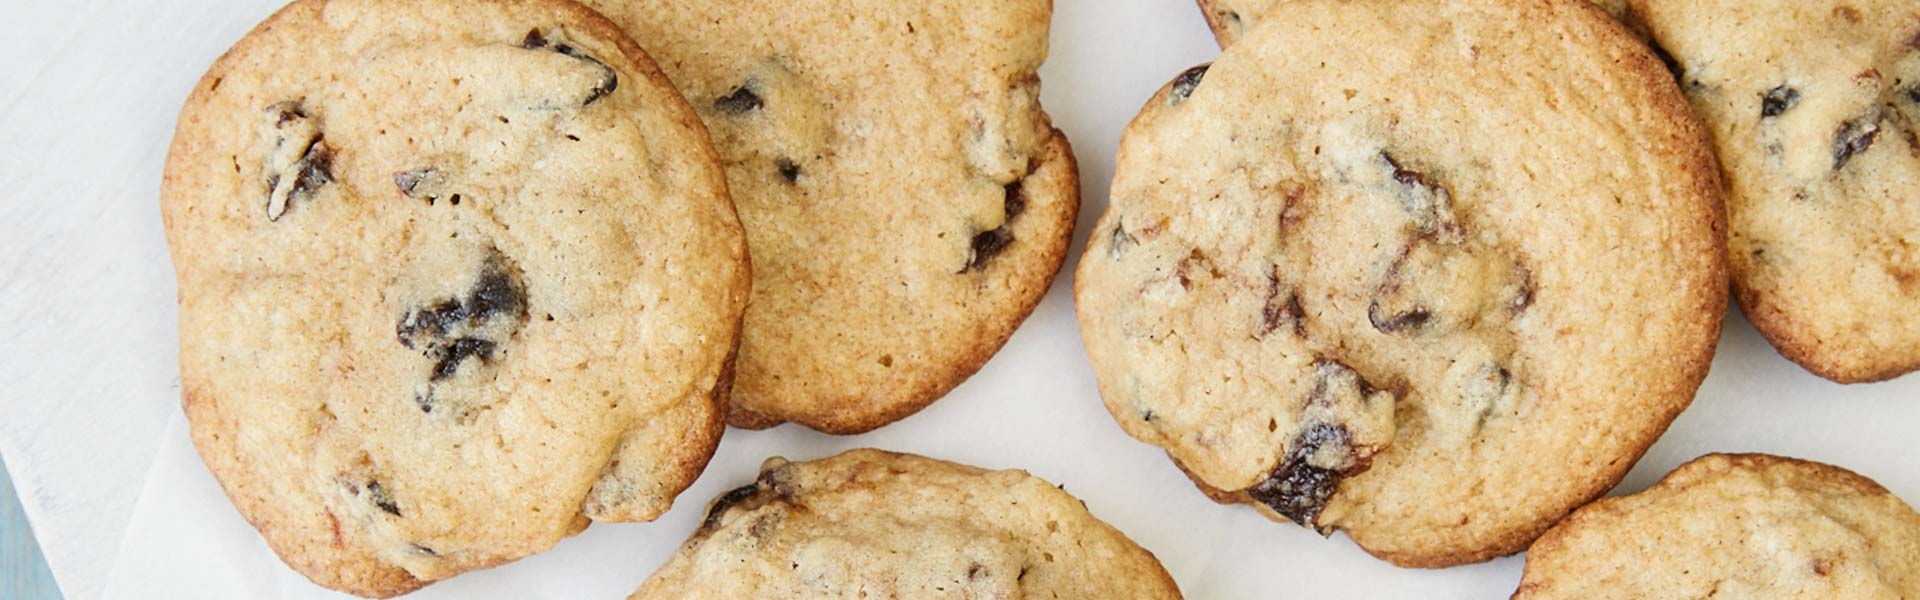 <p>Brown sugar, cinnamon, orange, and Prune Bits give this simple, buttery cookie a unique chewy texture. For less sugar and a deeper caramel color, add 10 g [1 tablespoon] Prune Juice Concentrate in place of 40 g [1/4 cup] brown sugar.</p>